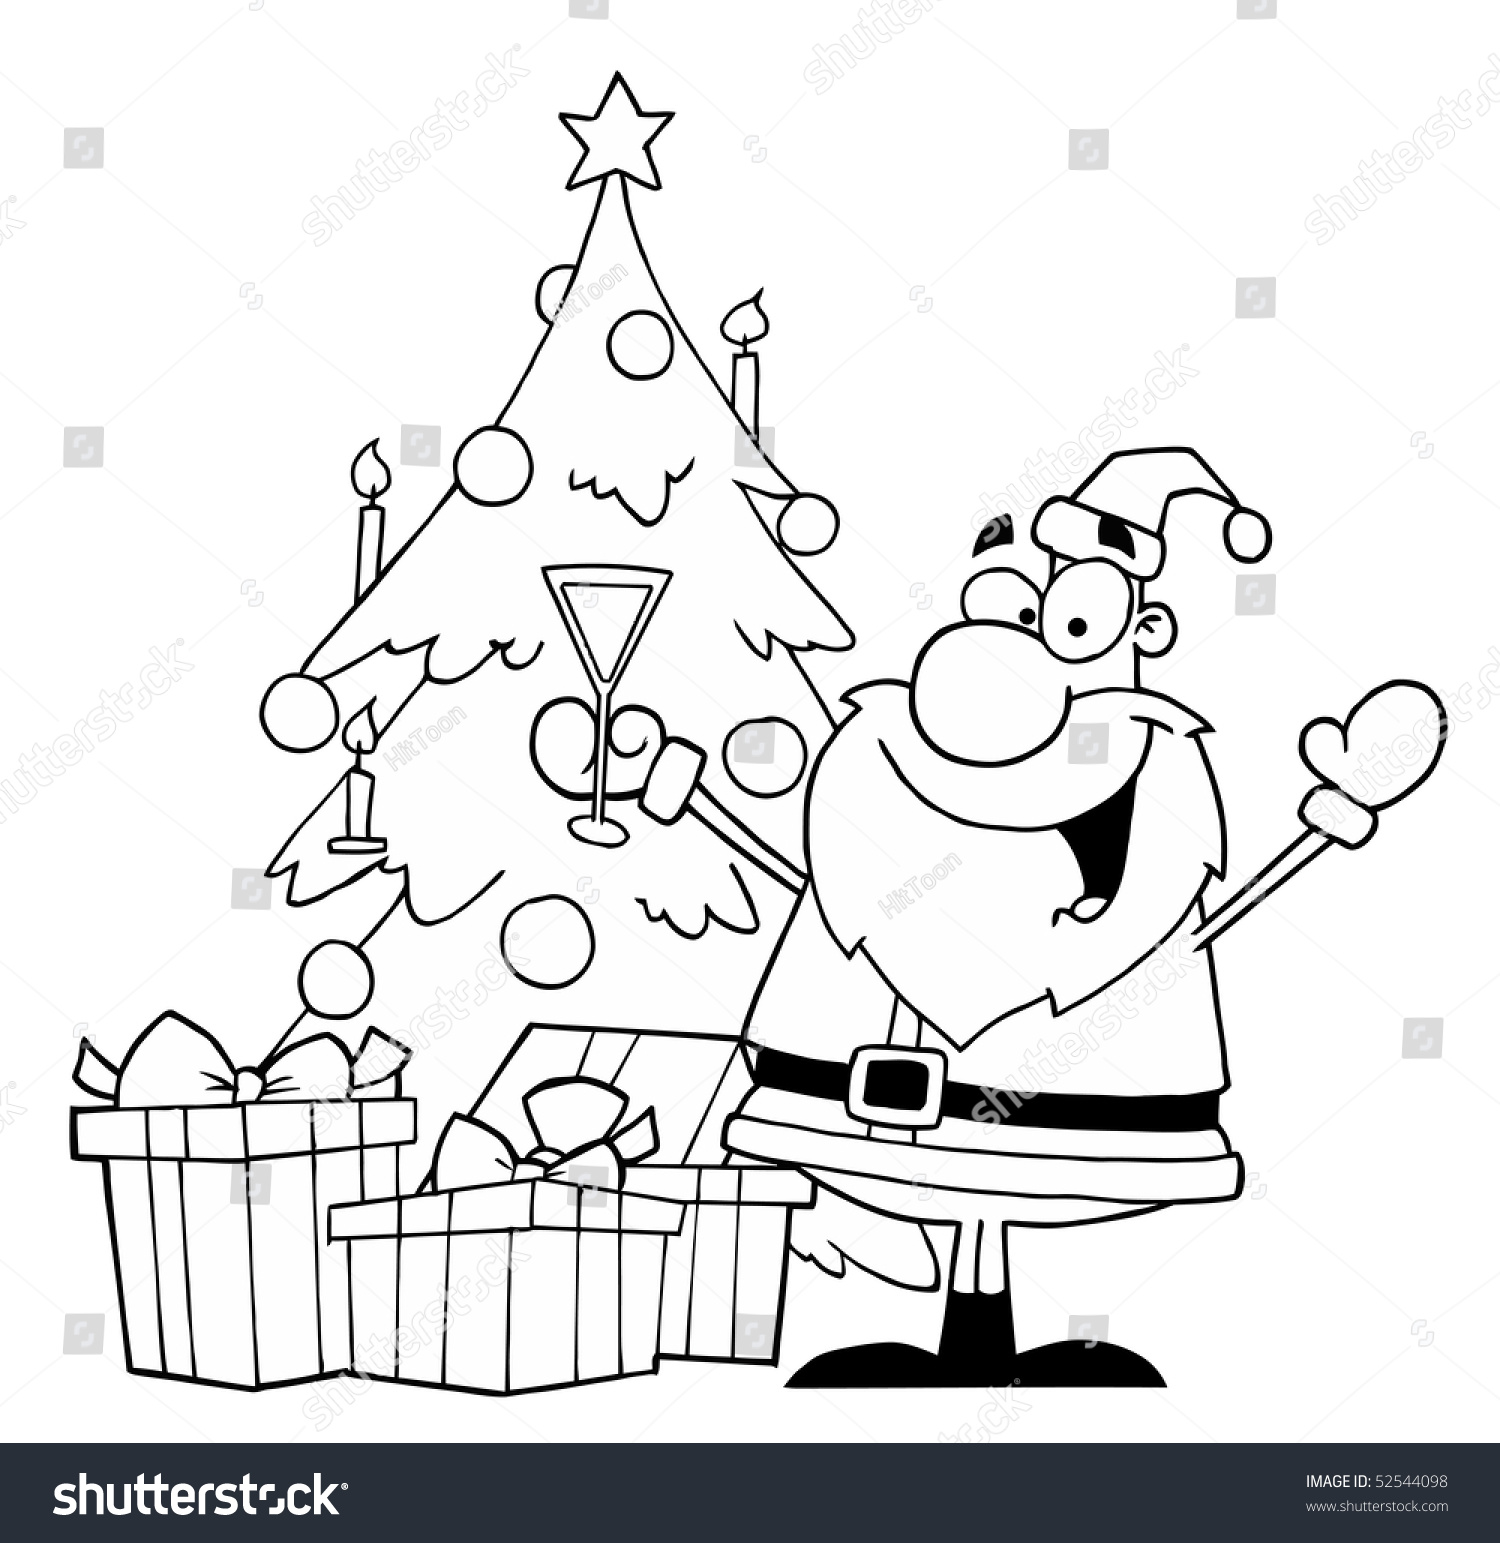 Black White Coloring Page Outline Santa Stock Vector (Royalty Free ...